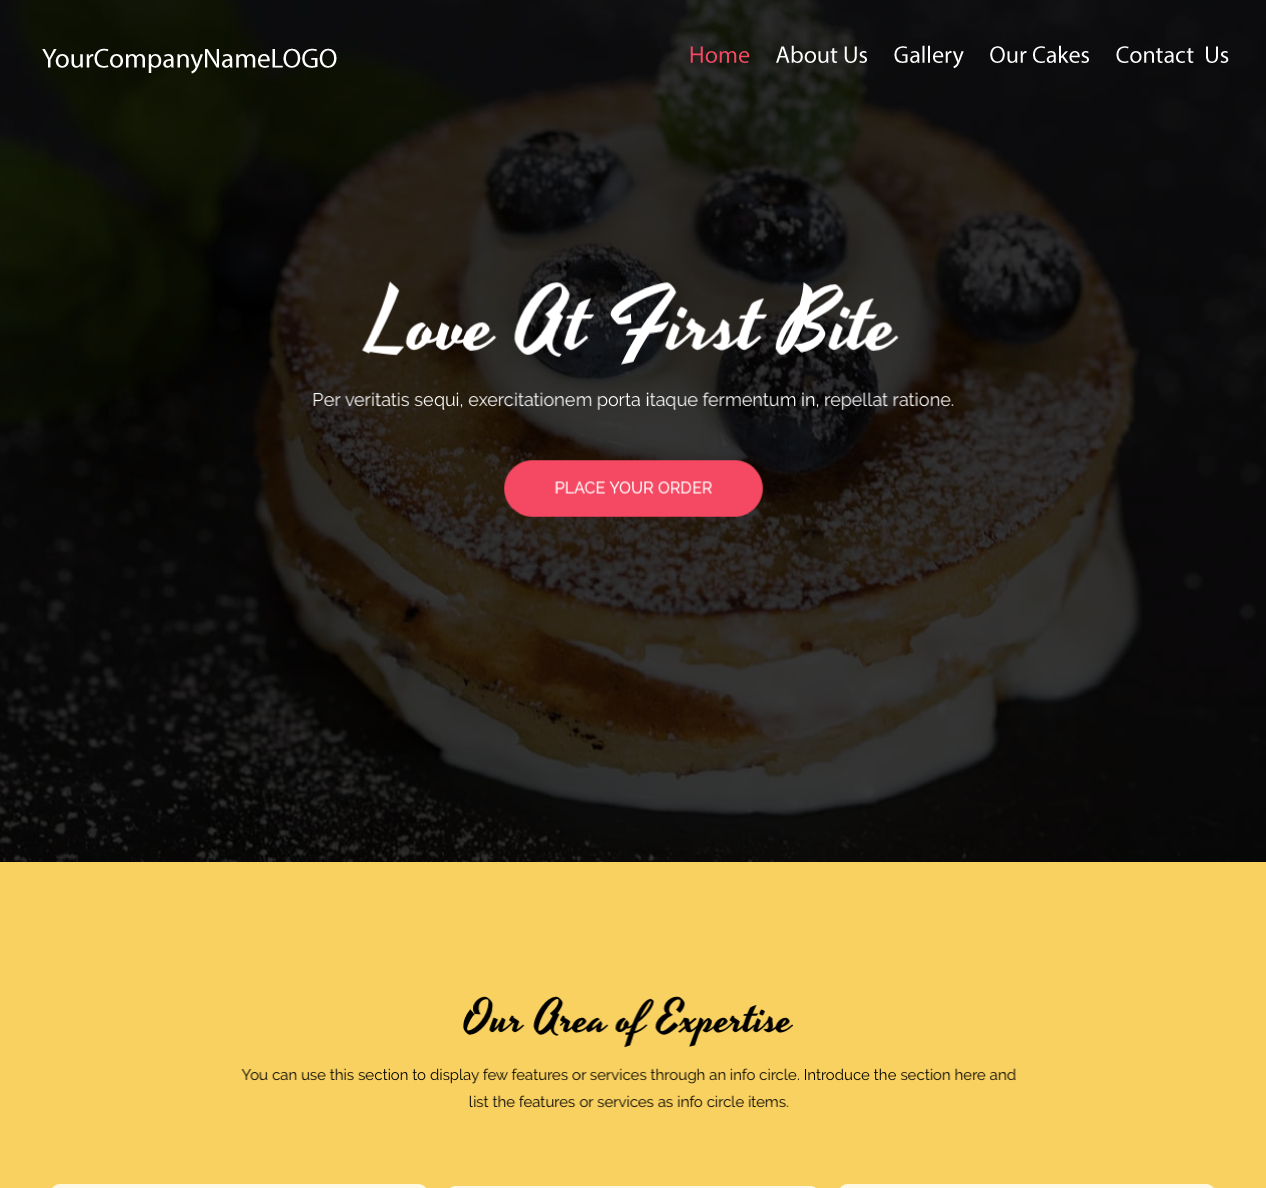 An image of a Bakery Love At First Bite new website design